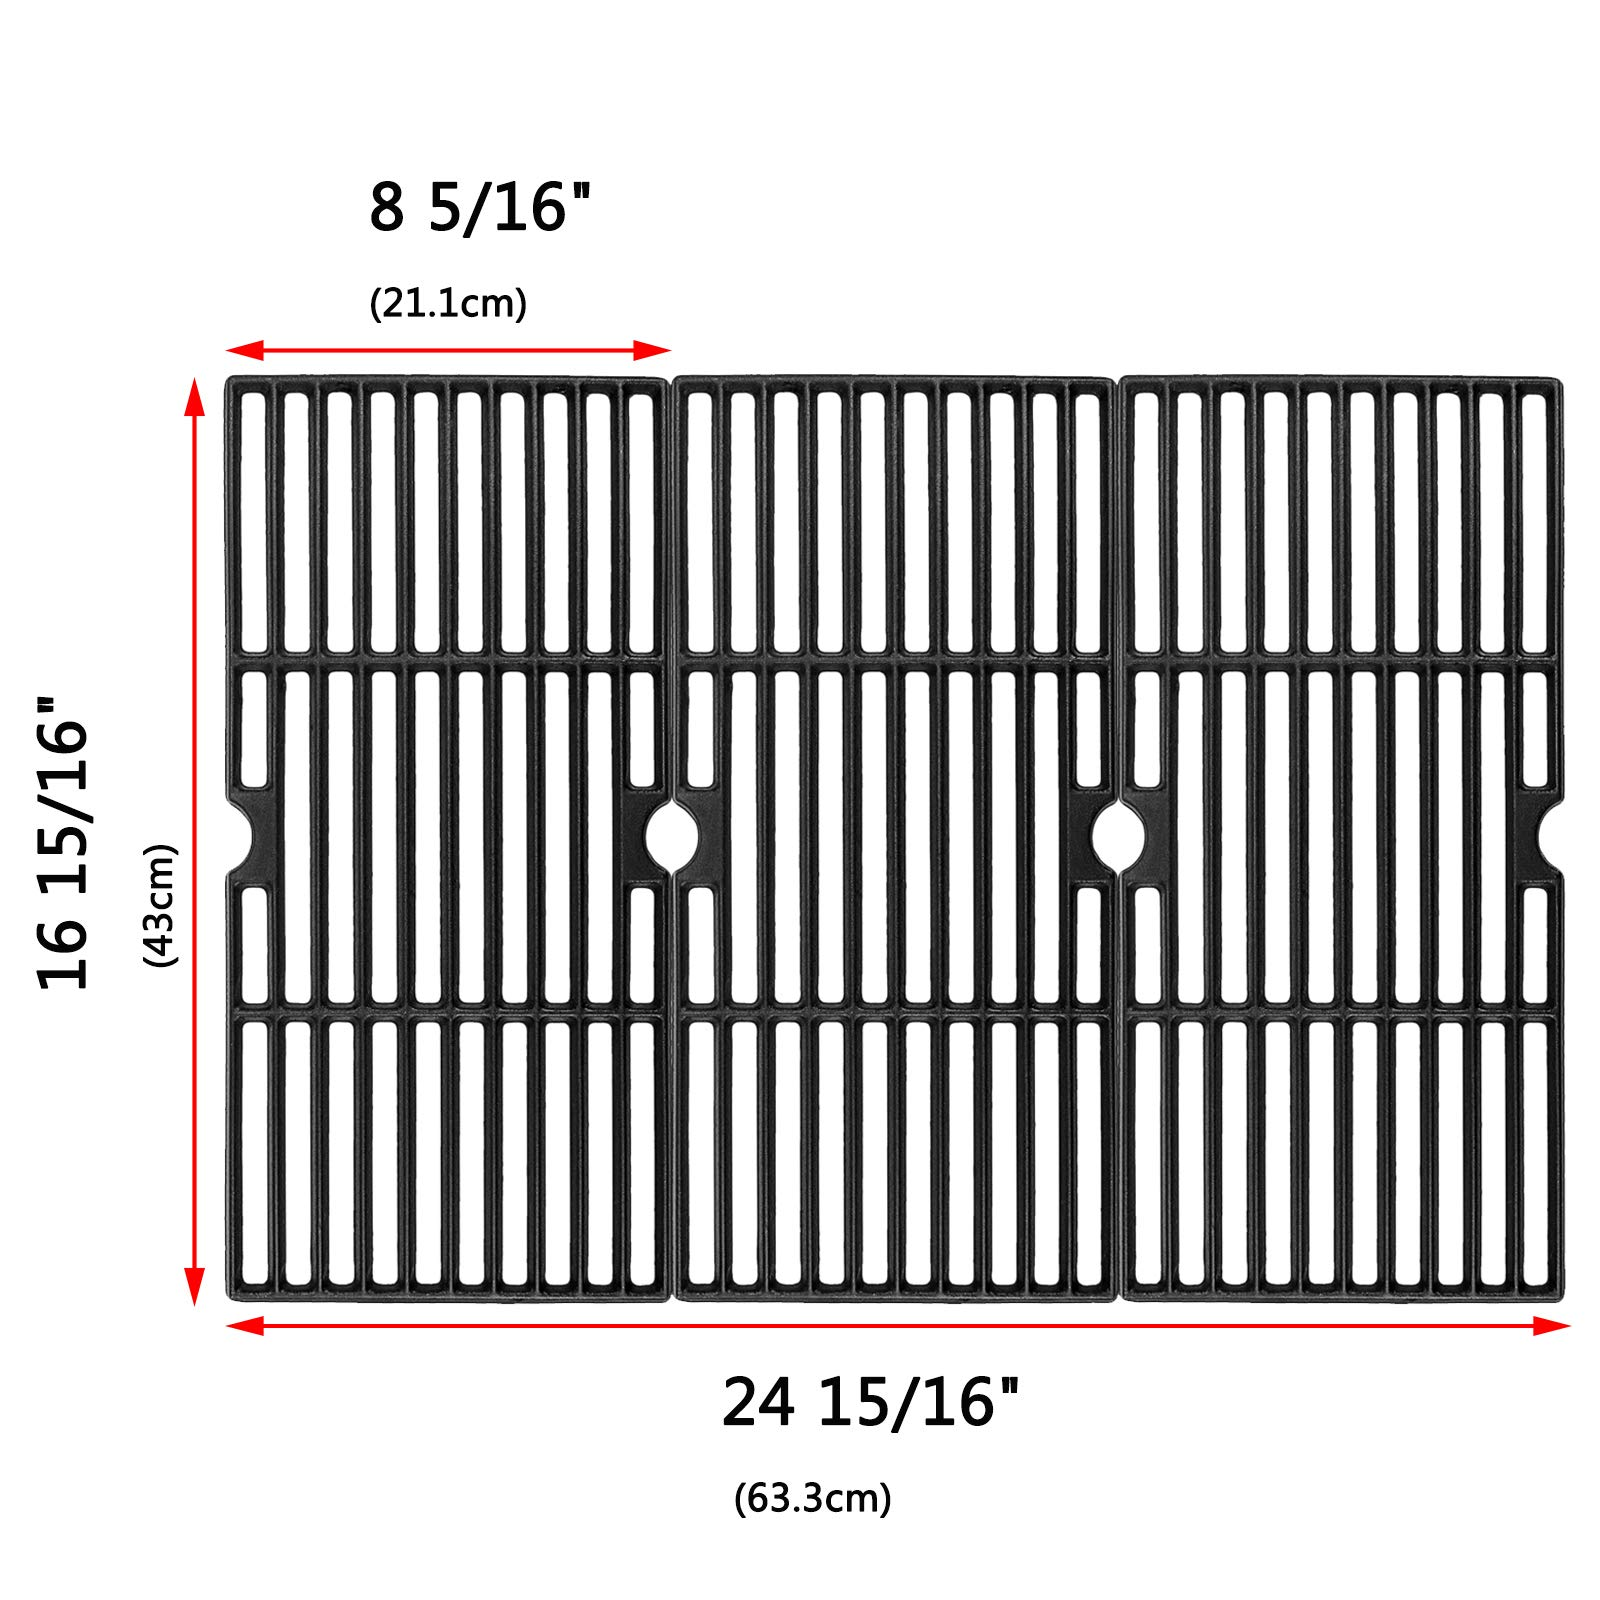 Uniflasy Cast Iron Cooking Grid Grates for Charbroil Advantage 463343015, 463344015, 463344116, Kenmore, Broil King and Others Gas Grill Models, G467-0002-W1, 16 15/16 Inches, Set of 3 by Uniflasy